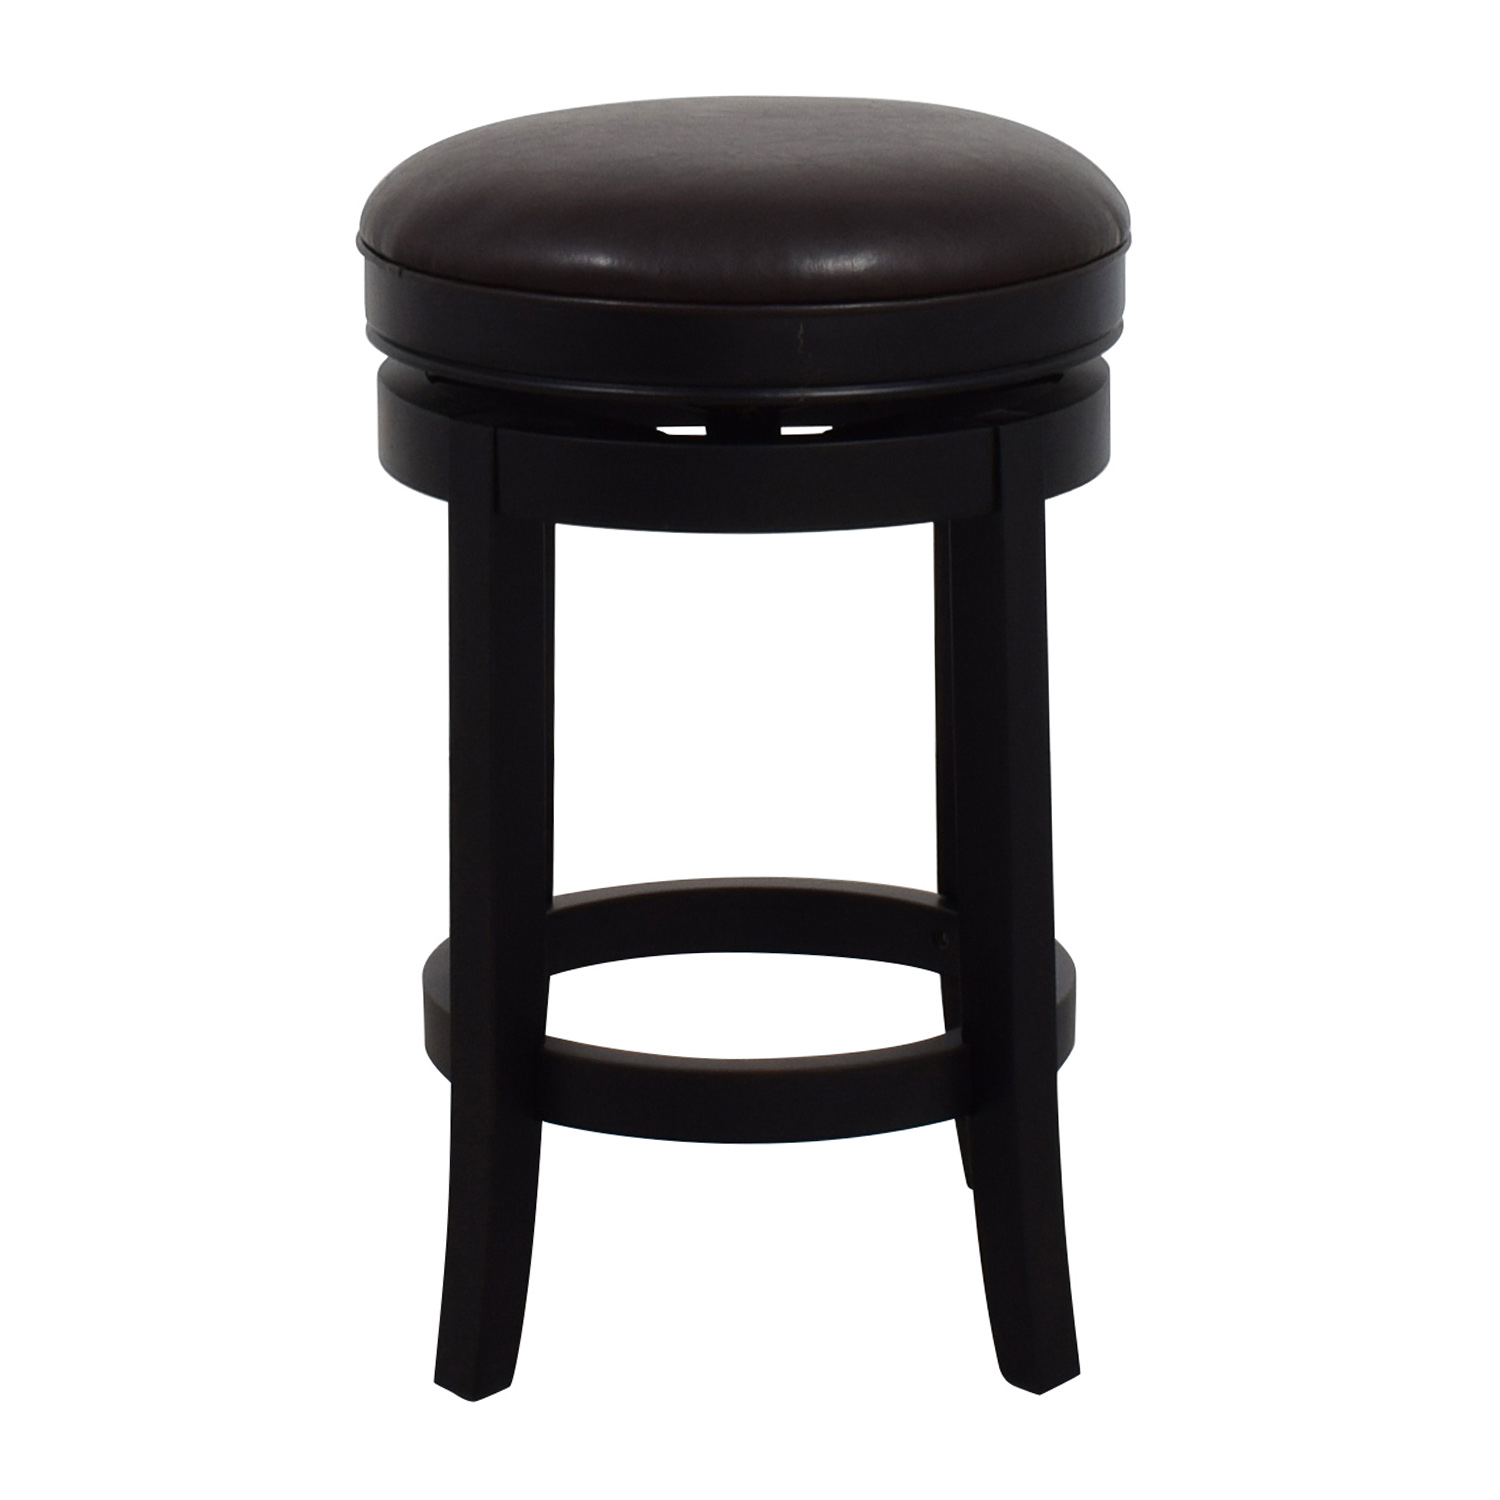 InMod InMod Cedric Round Backless Bar Stool Stools